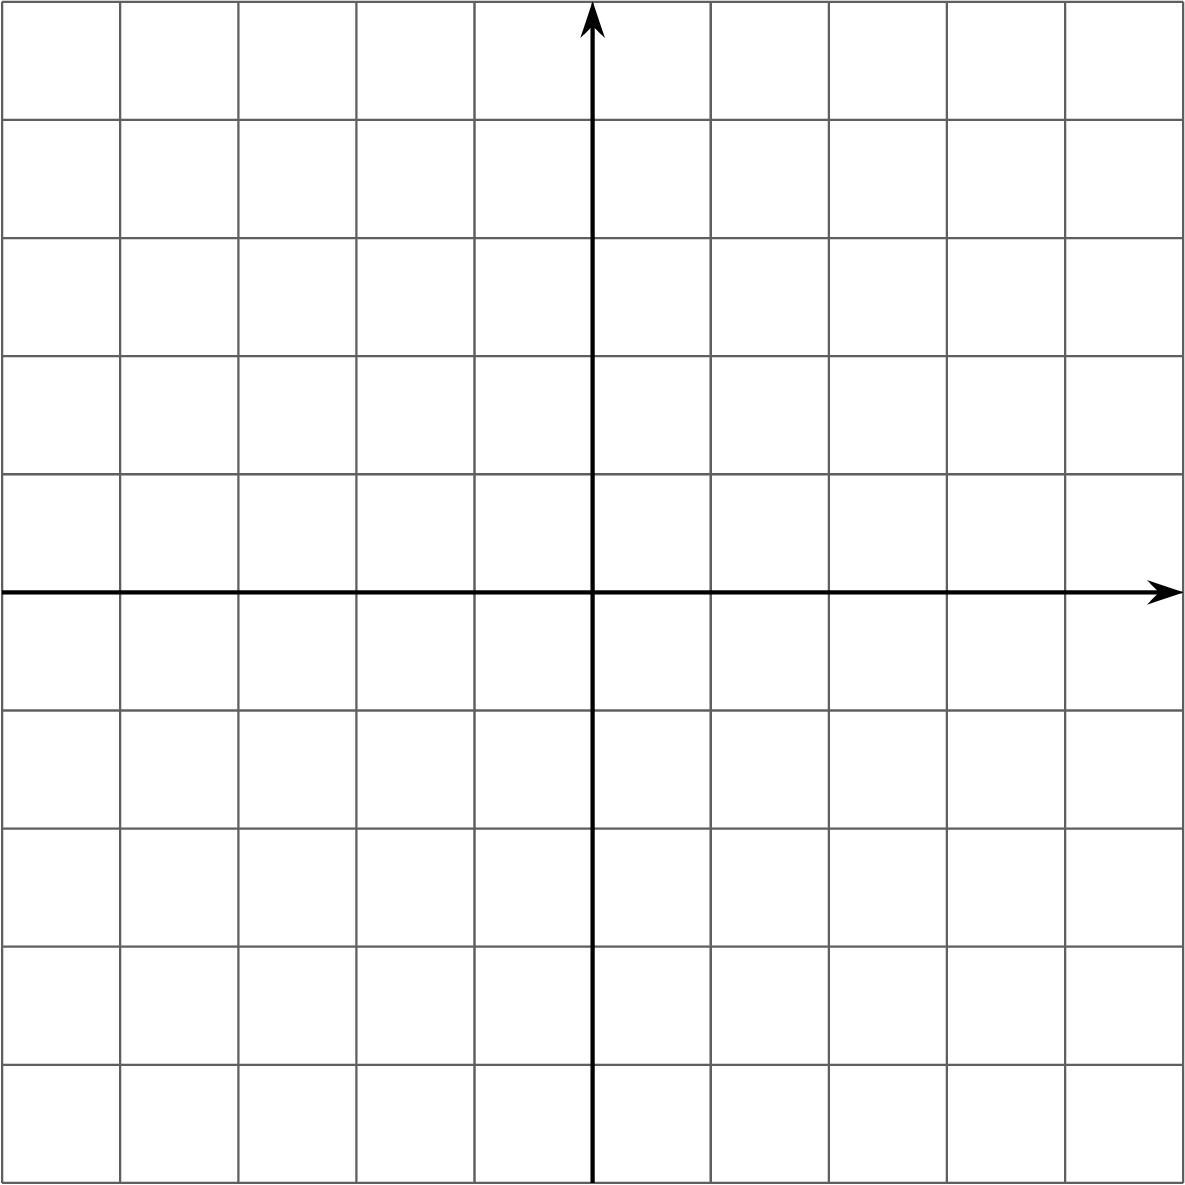 A blank coordinate grid. Both the horizontal axis and vertical axis have 9 evenly spaced units